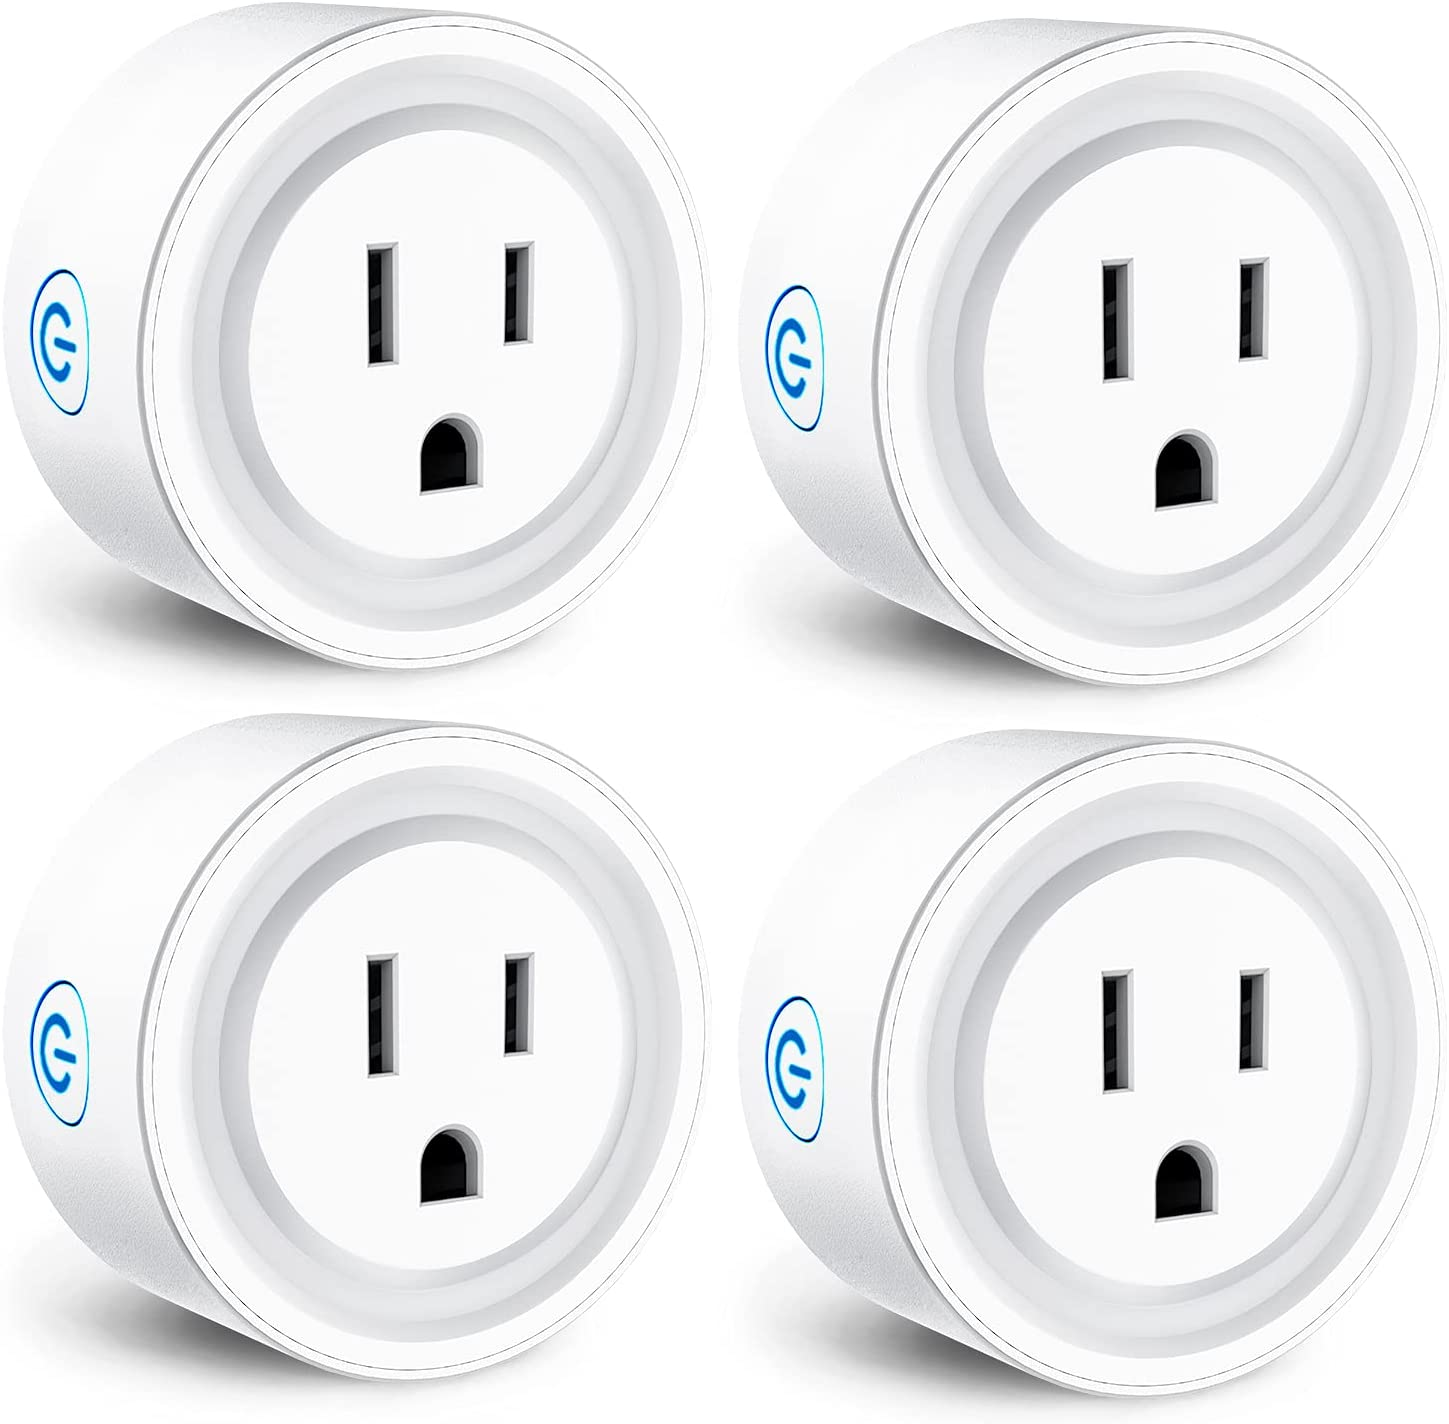 Smart Plug(10A, 100-240V), Svipear WiFi Socket Compatible with Alexa, Google Home, No Hub Required, Remote Control Your Home Appliances from Anywhere, Only Supports 2.4GHz Network(4 Pack)